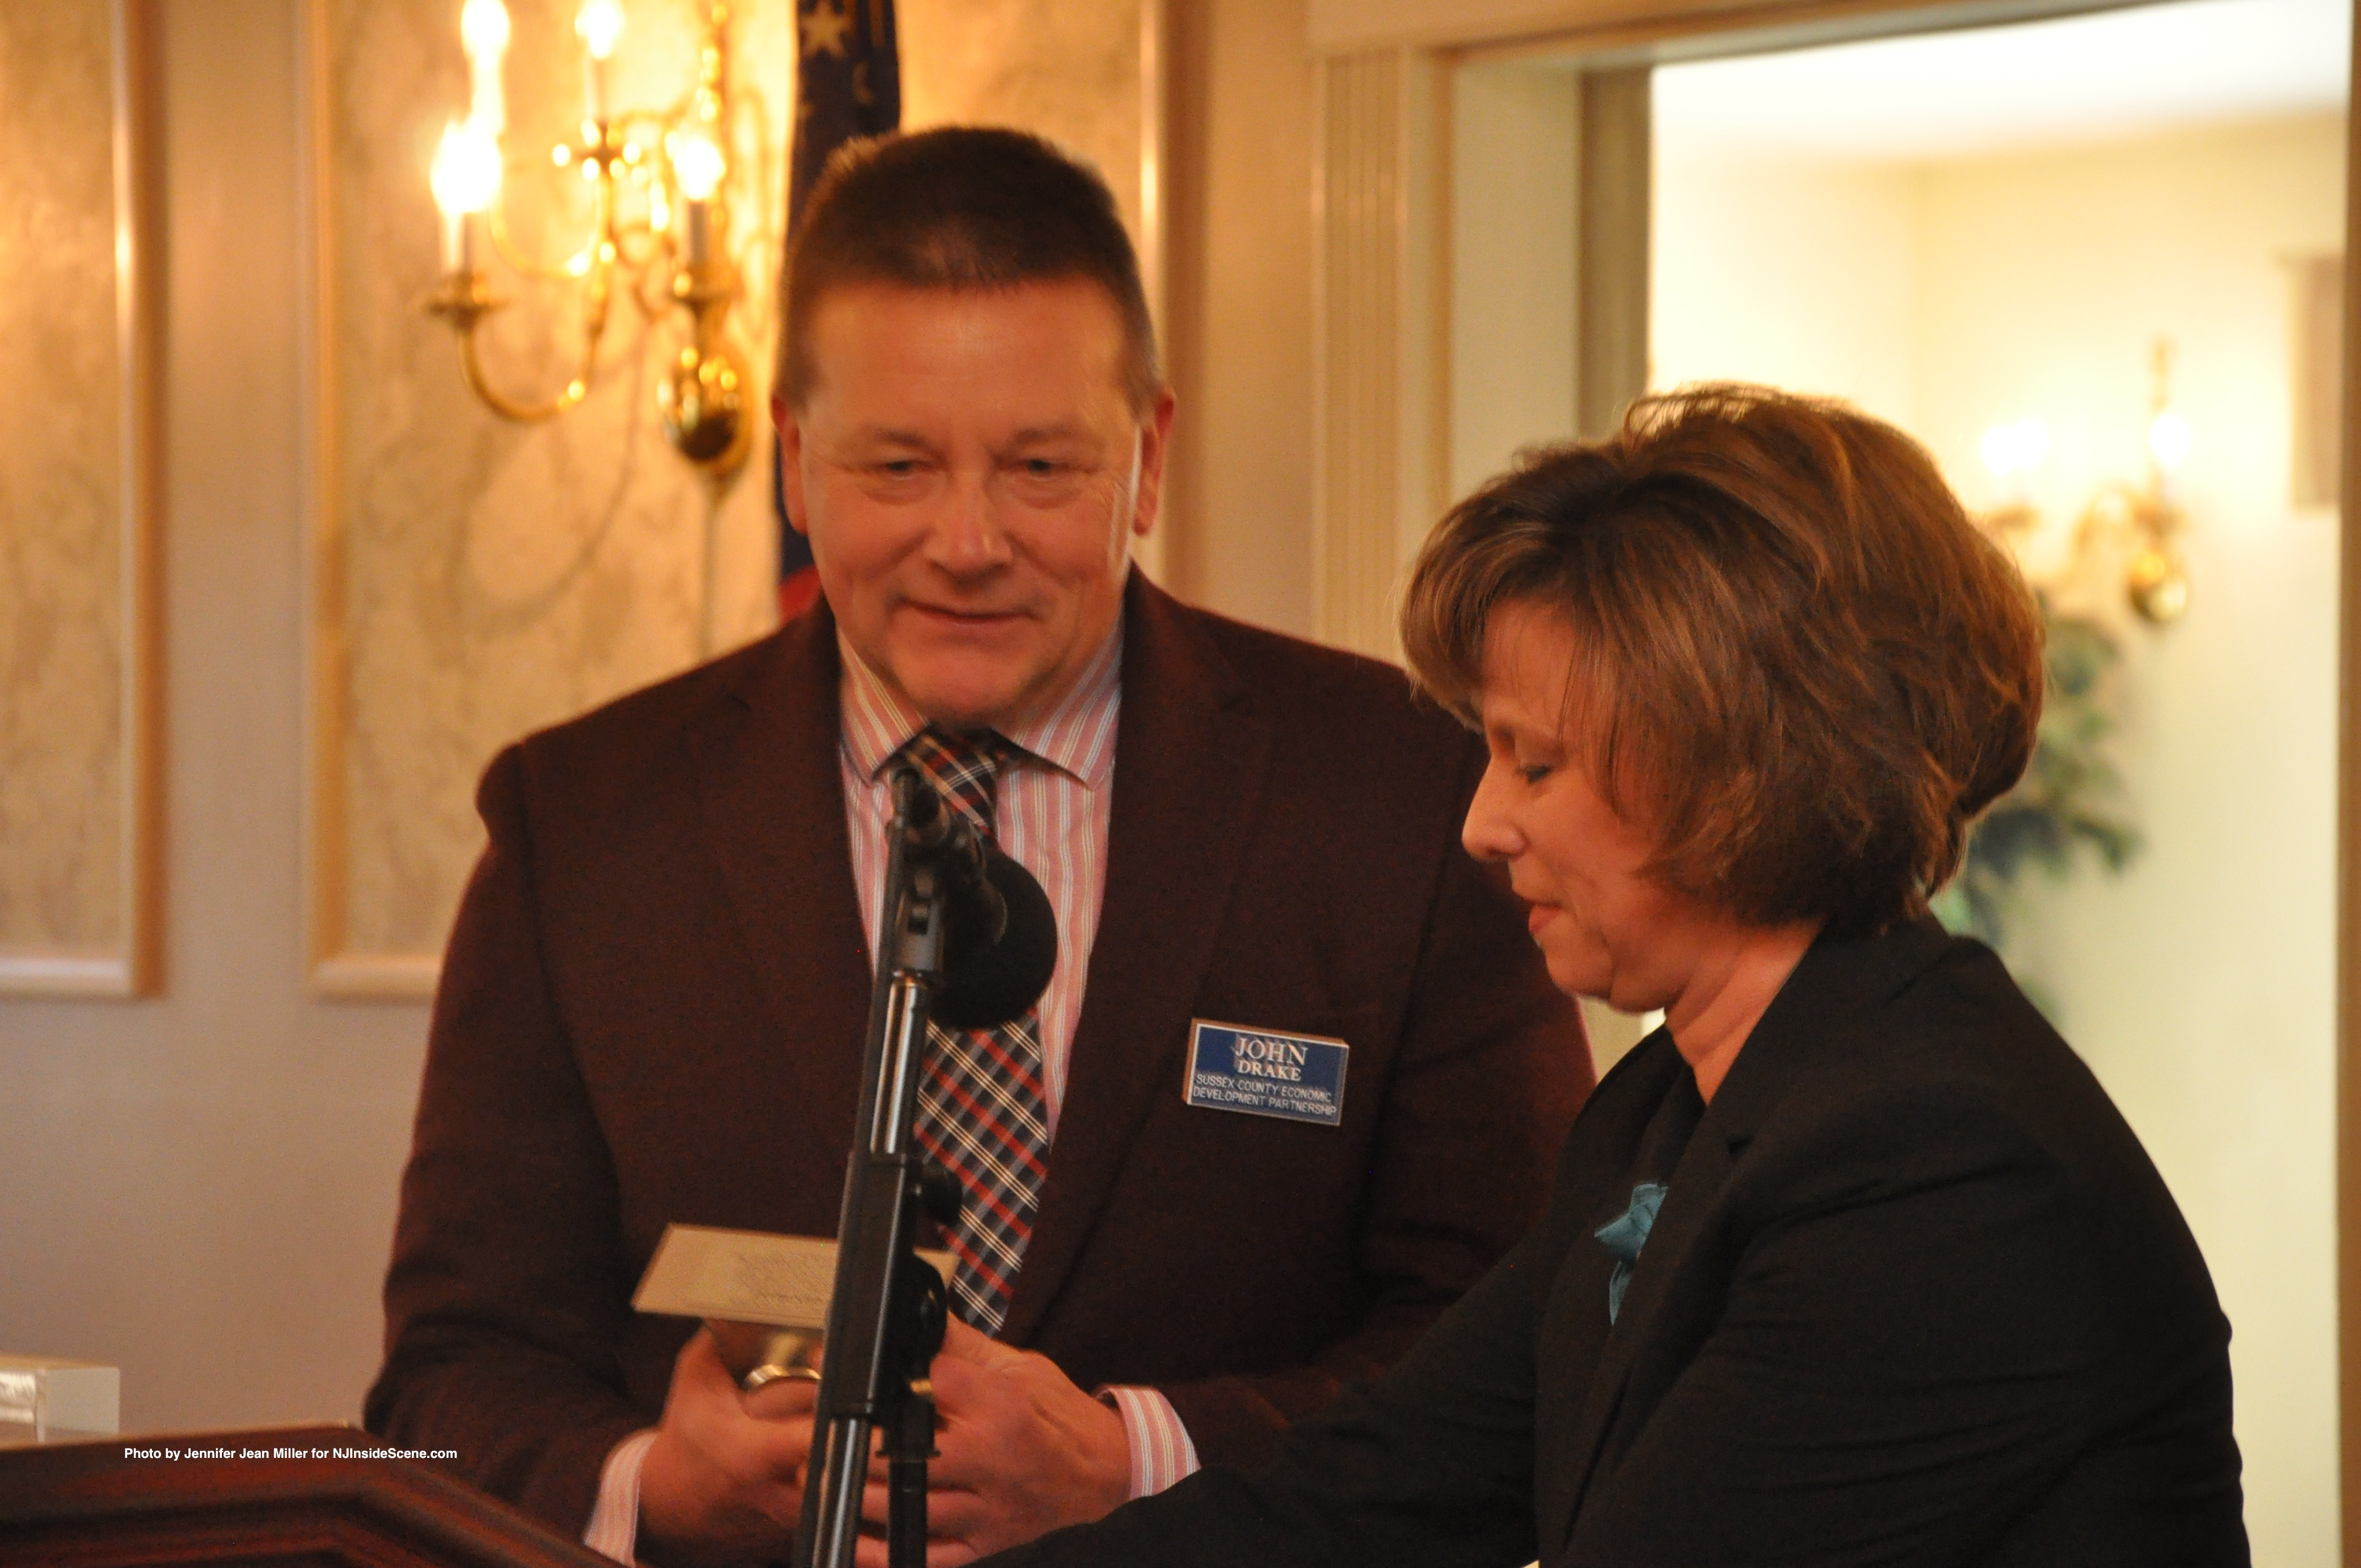 Tammie Horsfield President of the Sussex County Chamber of Commerce, and Economic Development Partnership, presents a special award to John Drake, for his advocacy to area businesses.